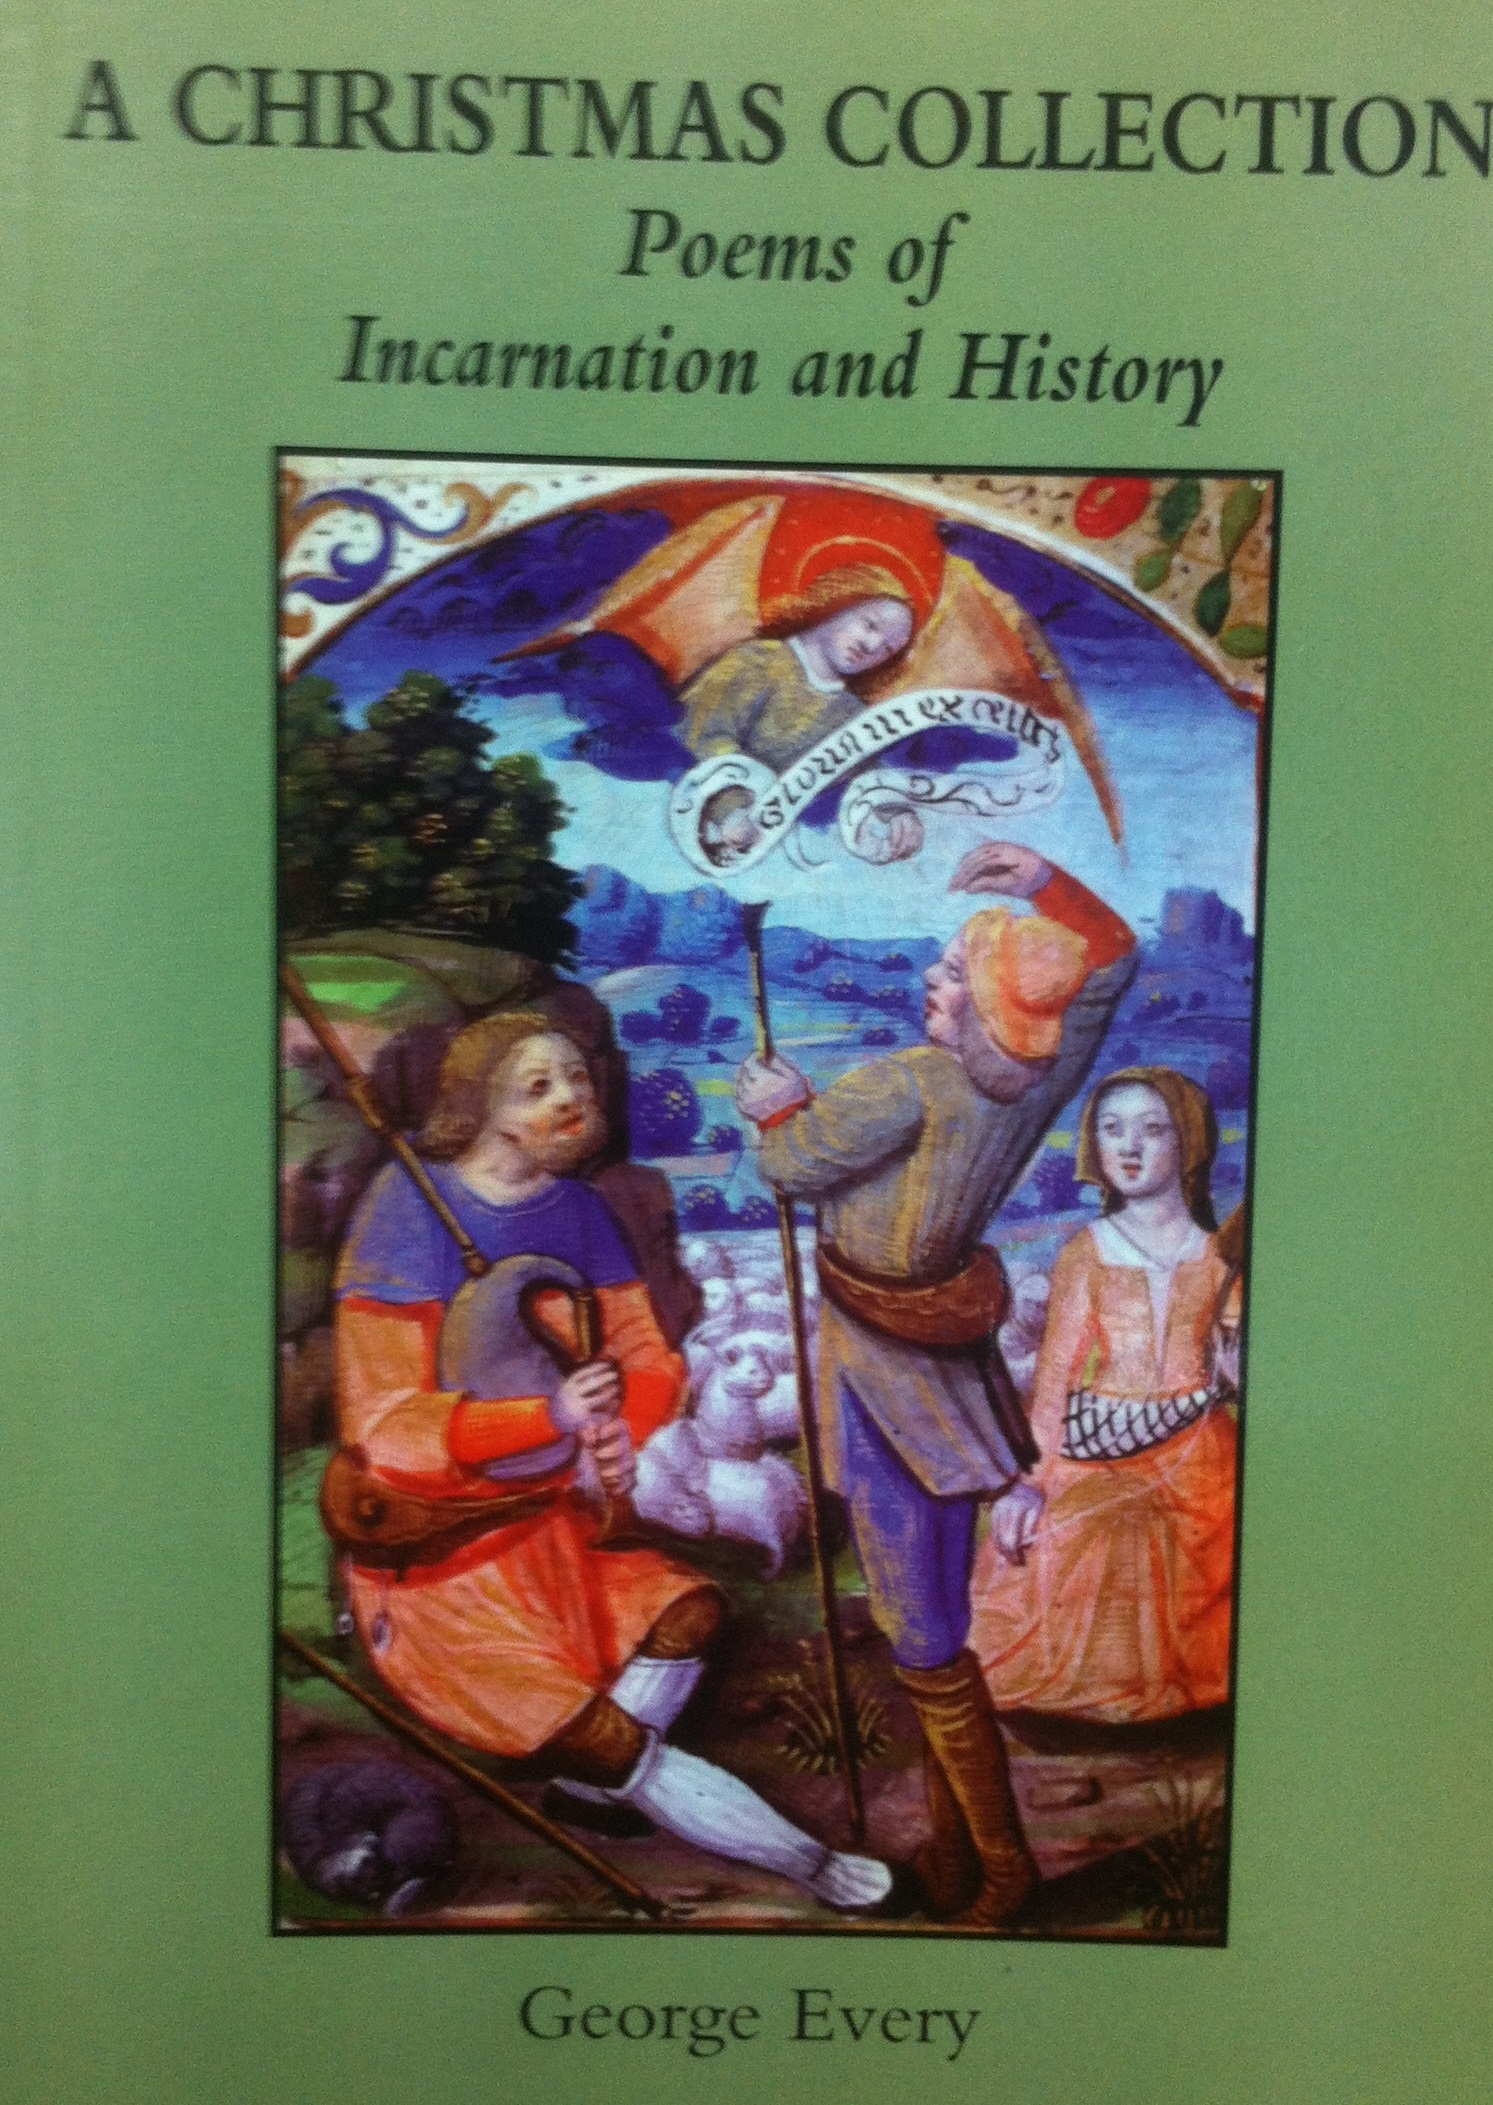 A Christmas Collection: Poems in Incarnation and History / George Every